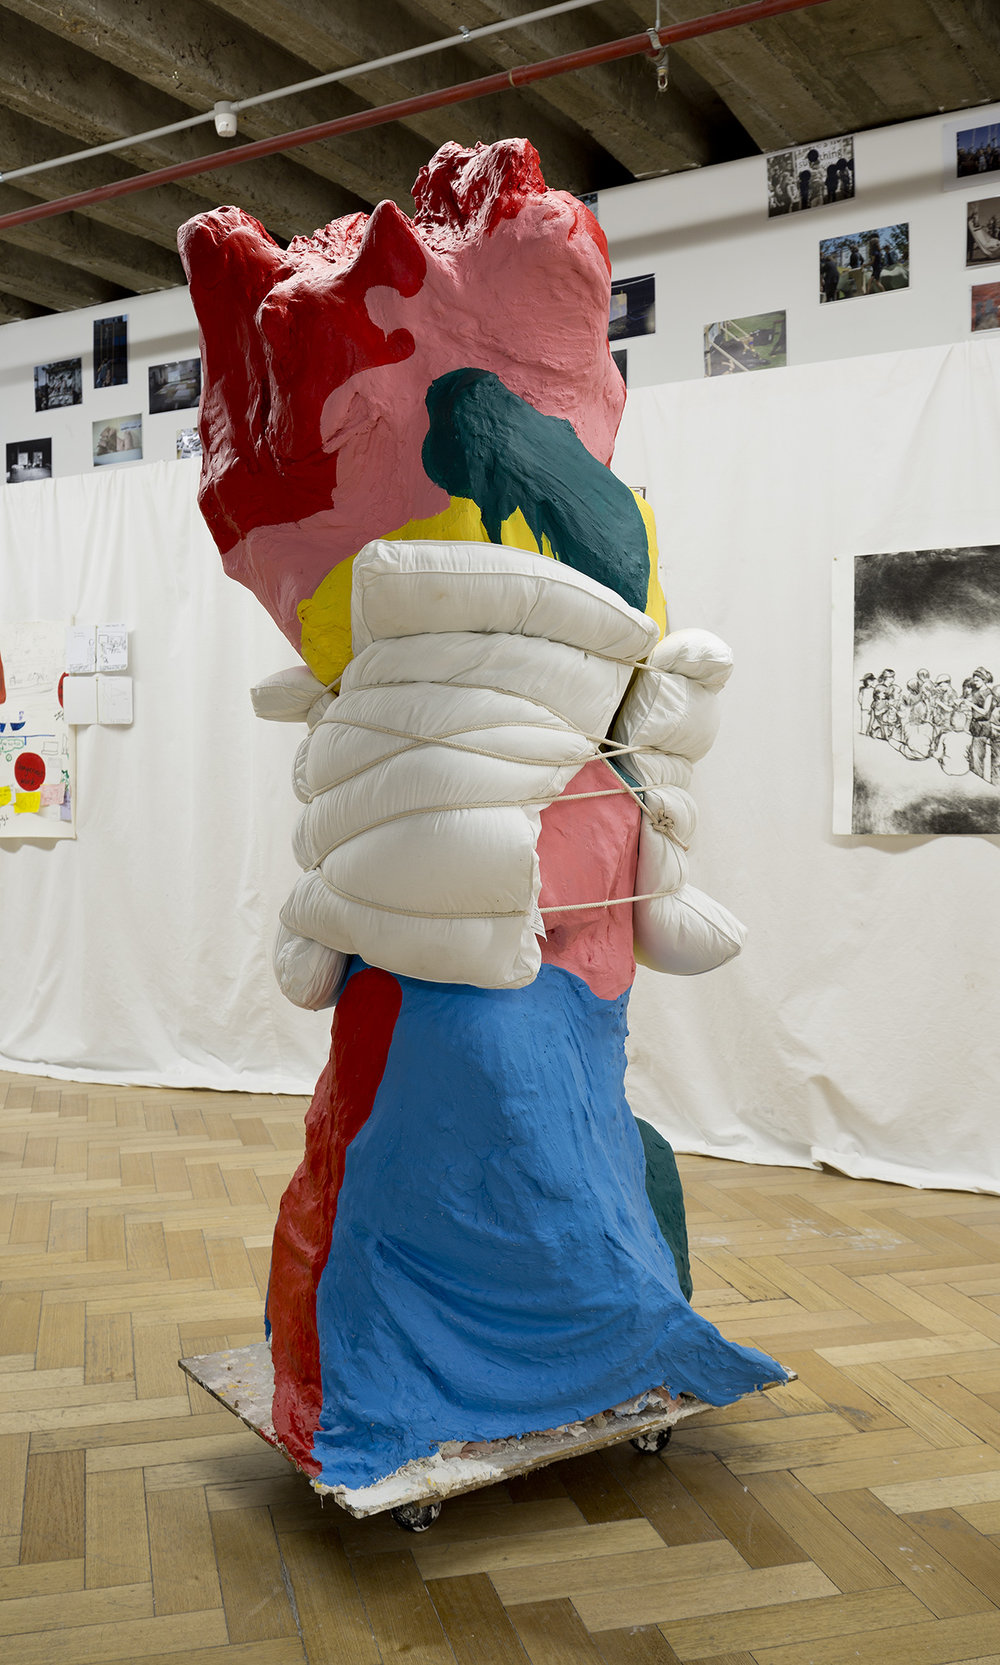 Education's blood with water viaduct and soft cell stitches , 2017, cardboard tubing, gauze from previous sculpture, backdrop material, plaster, house paint, clear Perspex single filing cabinet, curriculum documentation, rope, cardboard tubing, elastic, pillows,2050 X 600 X 450mm.Image: Christo Crocker